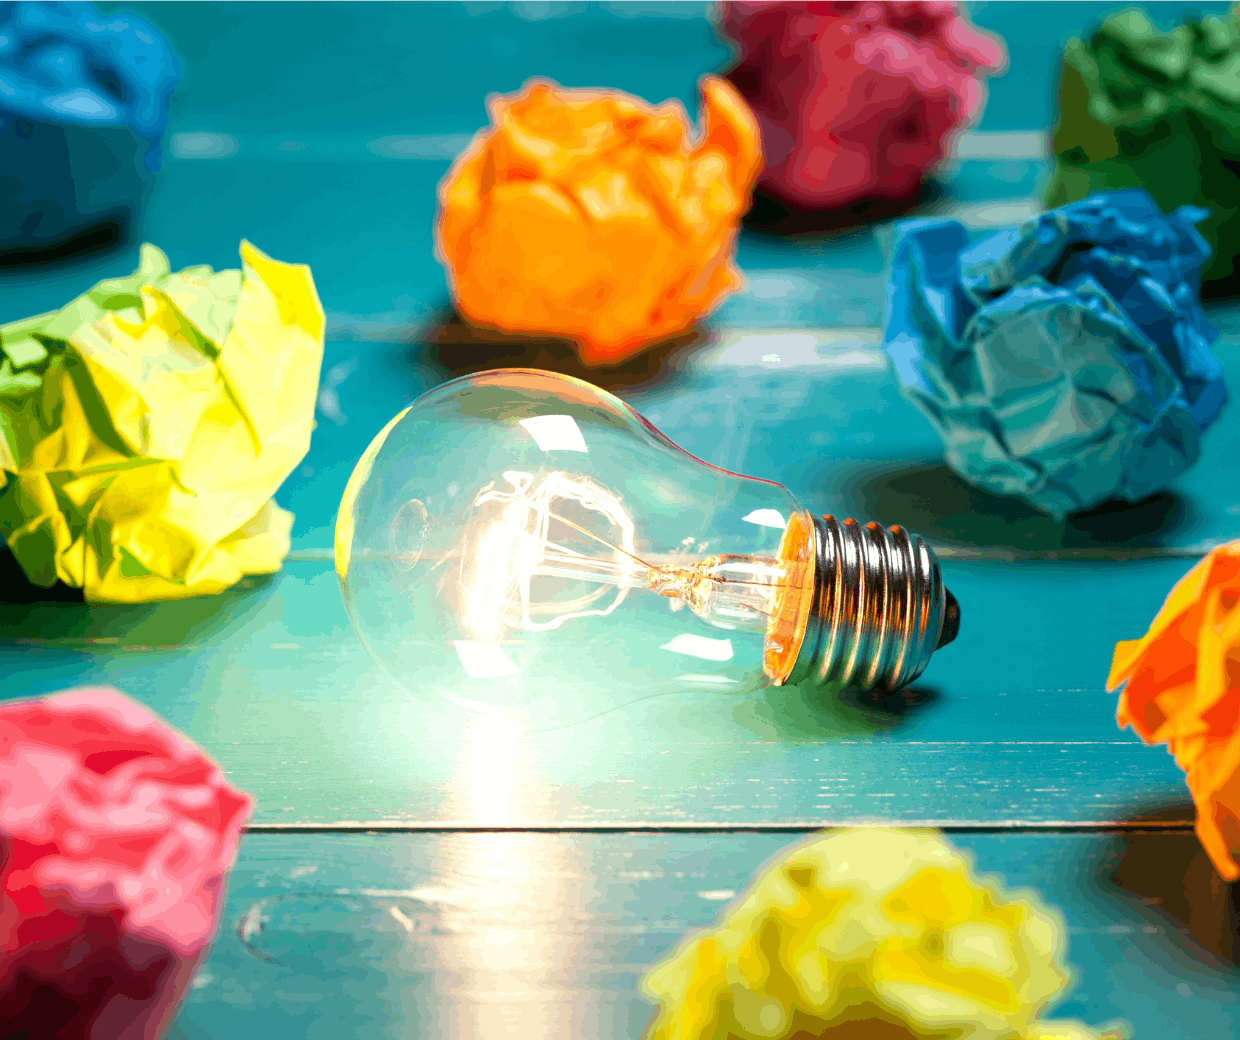 Disruption comes from ideas, not just tech